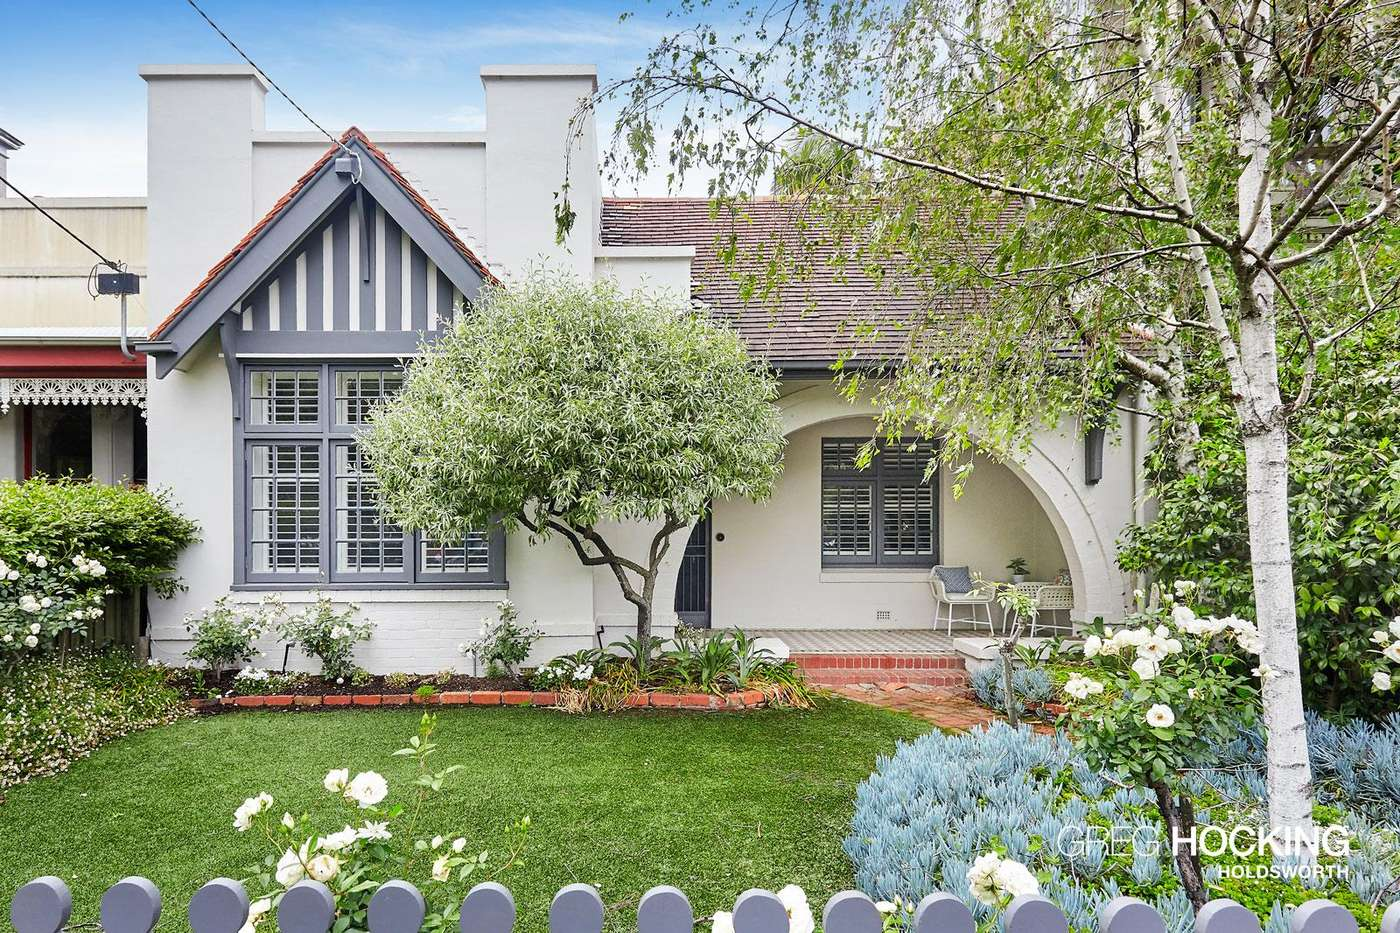 Main view of Homely house listing, 31 St Vincent Place, Albert Park, VIC 3206